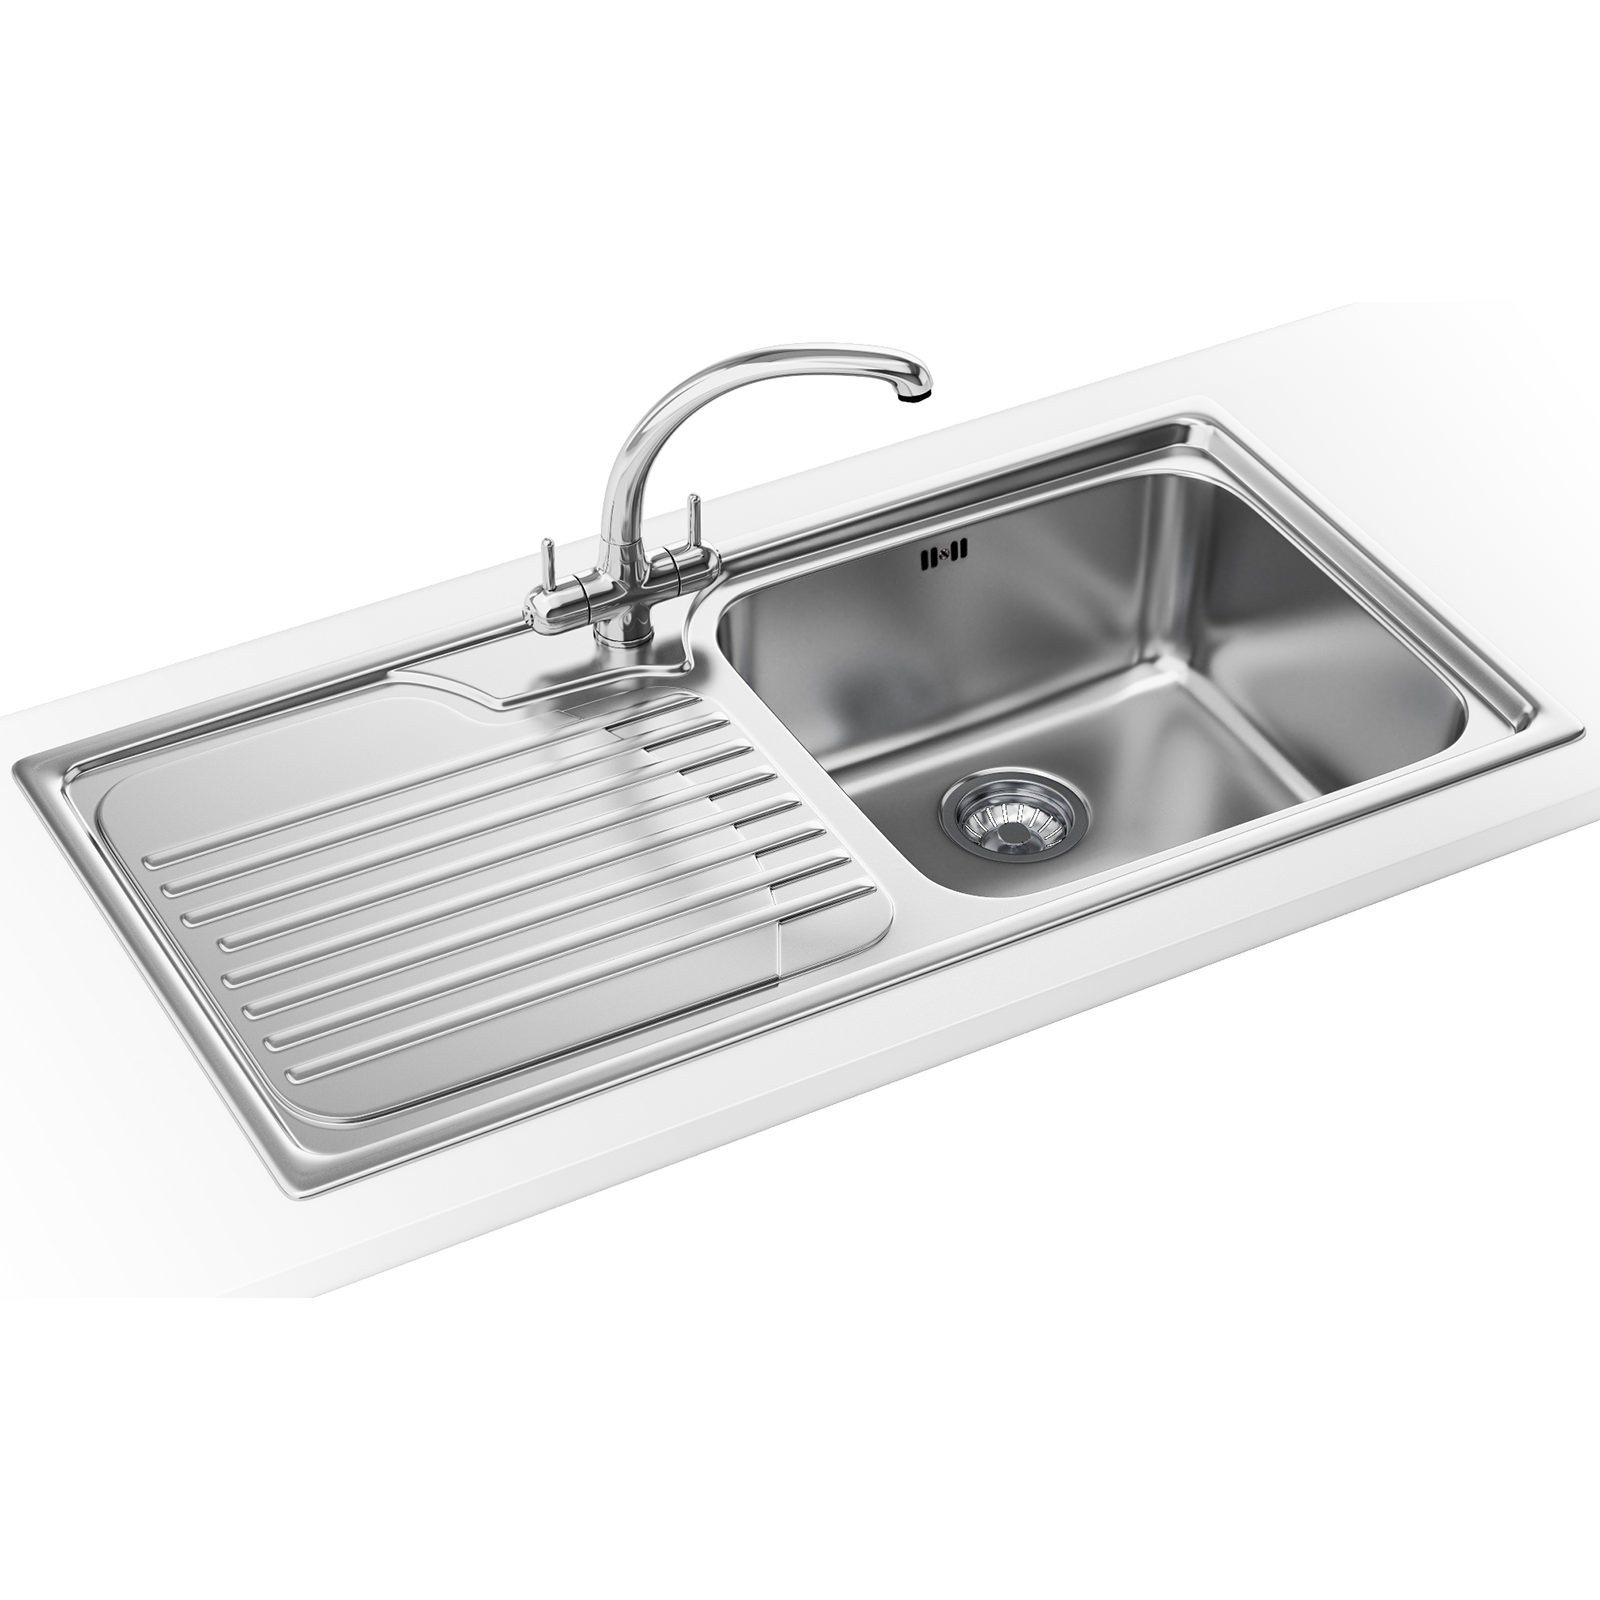 Franke Sinks And Taps : Franke Galassia Propack GAX 611 Stainless Steel Kitchen Sink And Tap